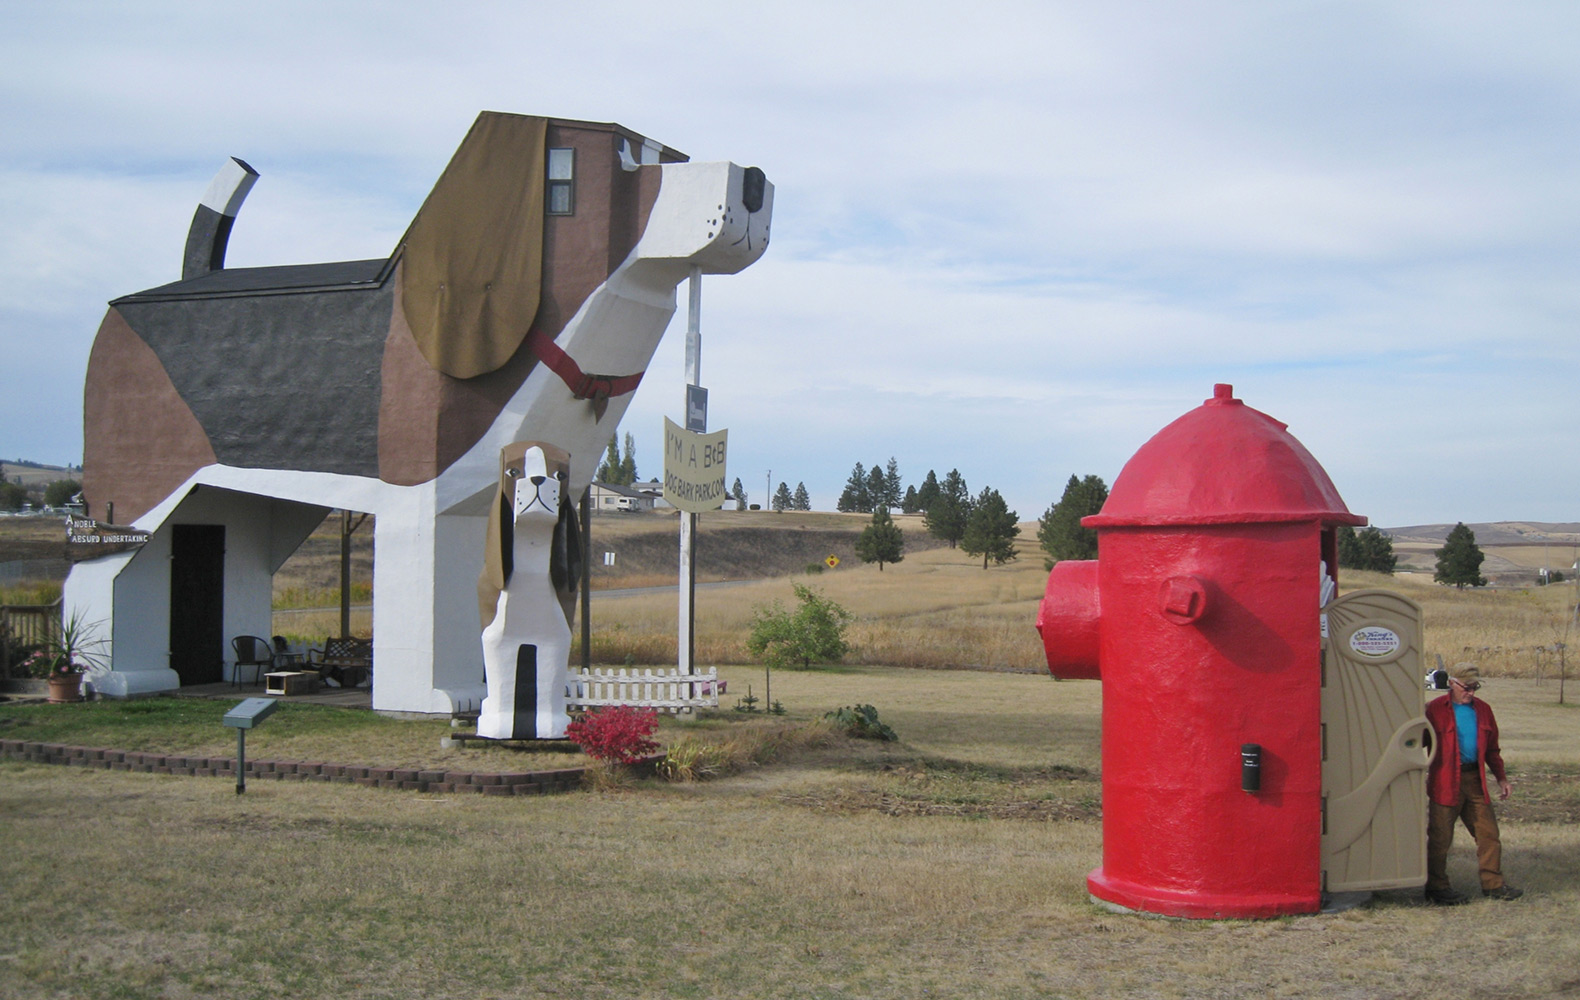 Dog Bark Park Inn, The Most Unusual Staying Solution